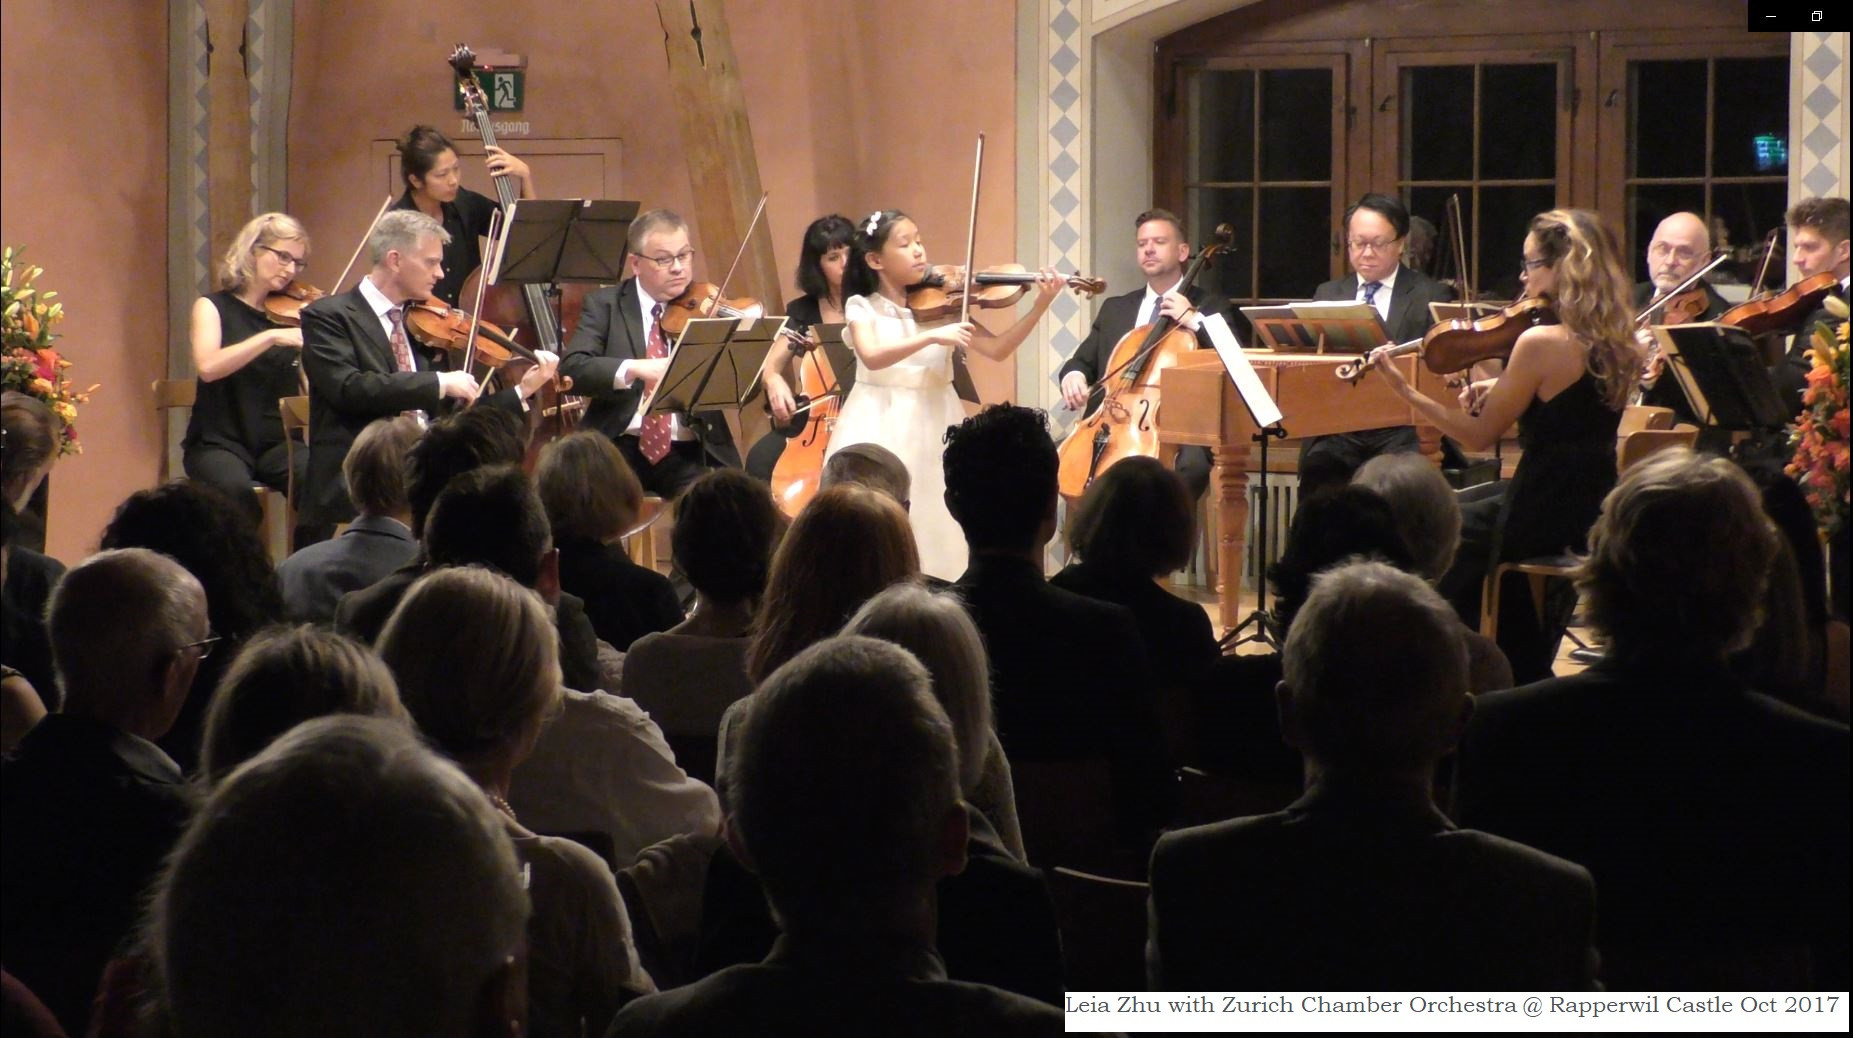 Leia Zhu with Zurich Chamber Orchestra